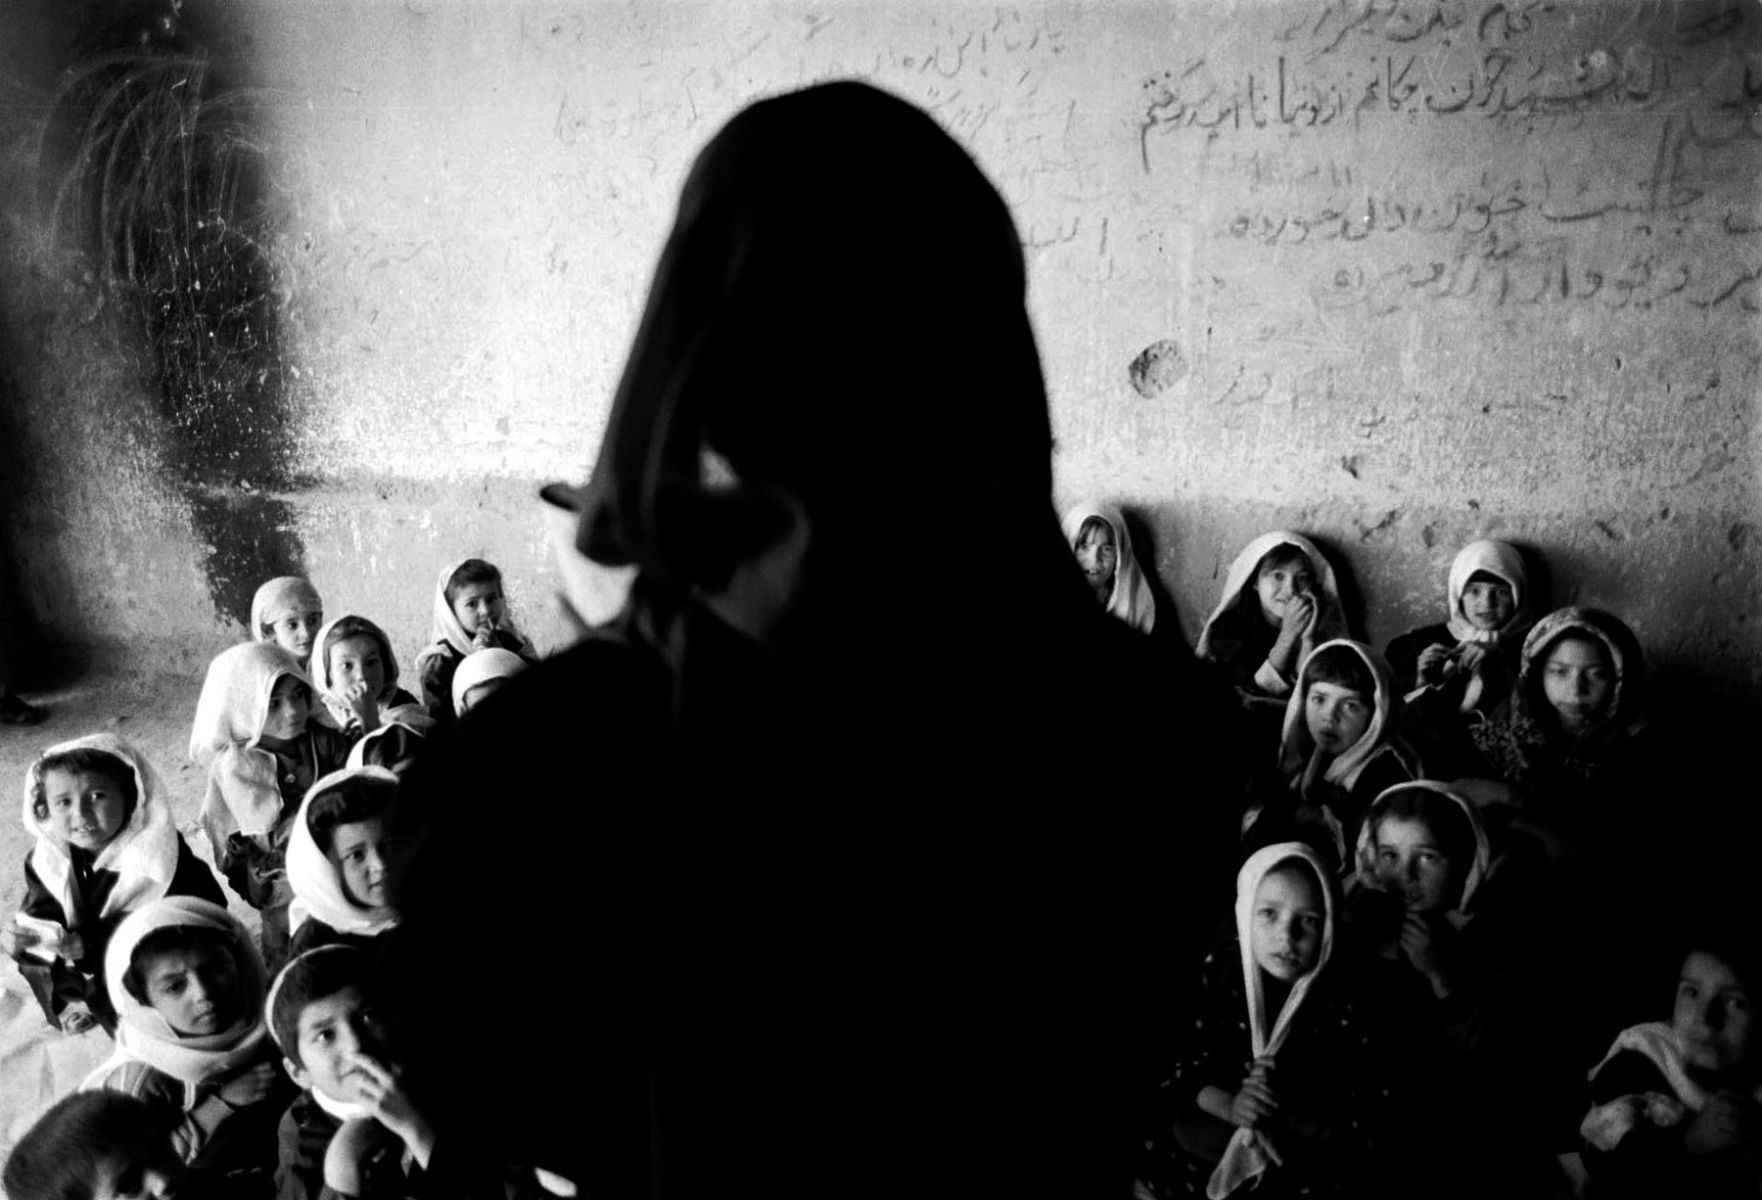 School for GirlsKabul, Afghnaistan1996